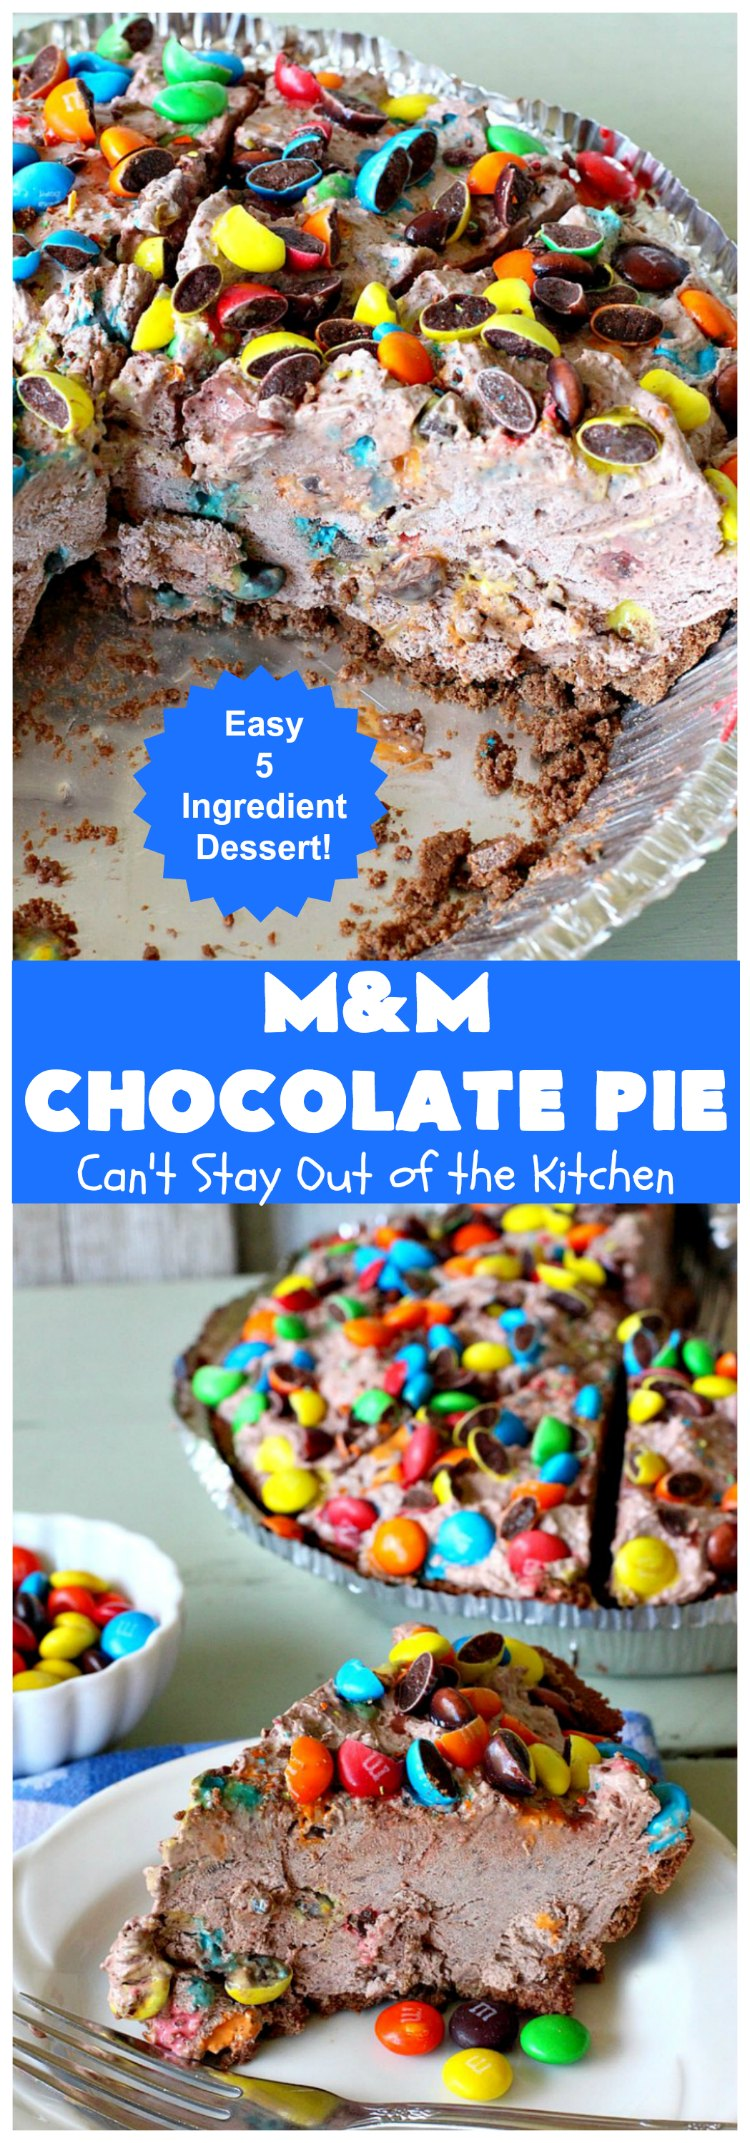 M&M Chocolate Pie | Can't Stay Out of the Kitchen | this awesome 5-ingredient #dessert is rich, decadent & heavenly. The #chocolate filling is filled with #M&Ms making it utterly delightful. Perfect for #holiday or company parties. #pie #ChocolateDessert #HolidayDessert #M&MDessert #M&MChocolatePie #ChocolatePie #MMs